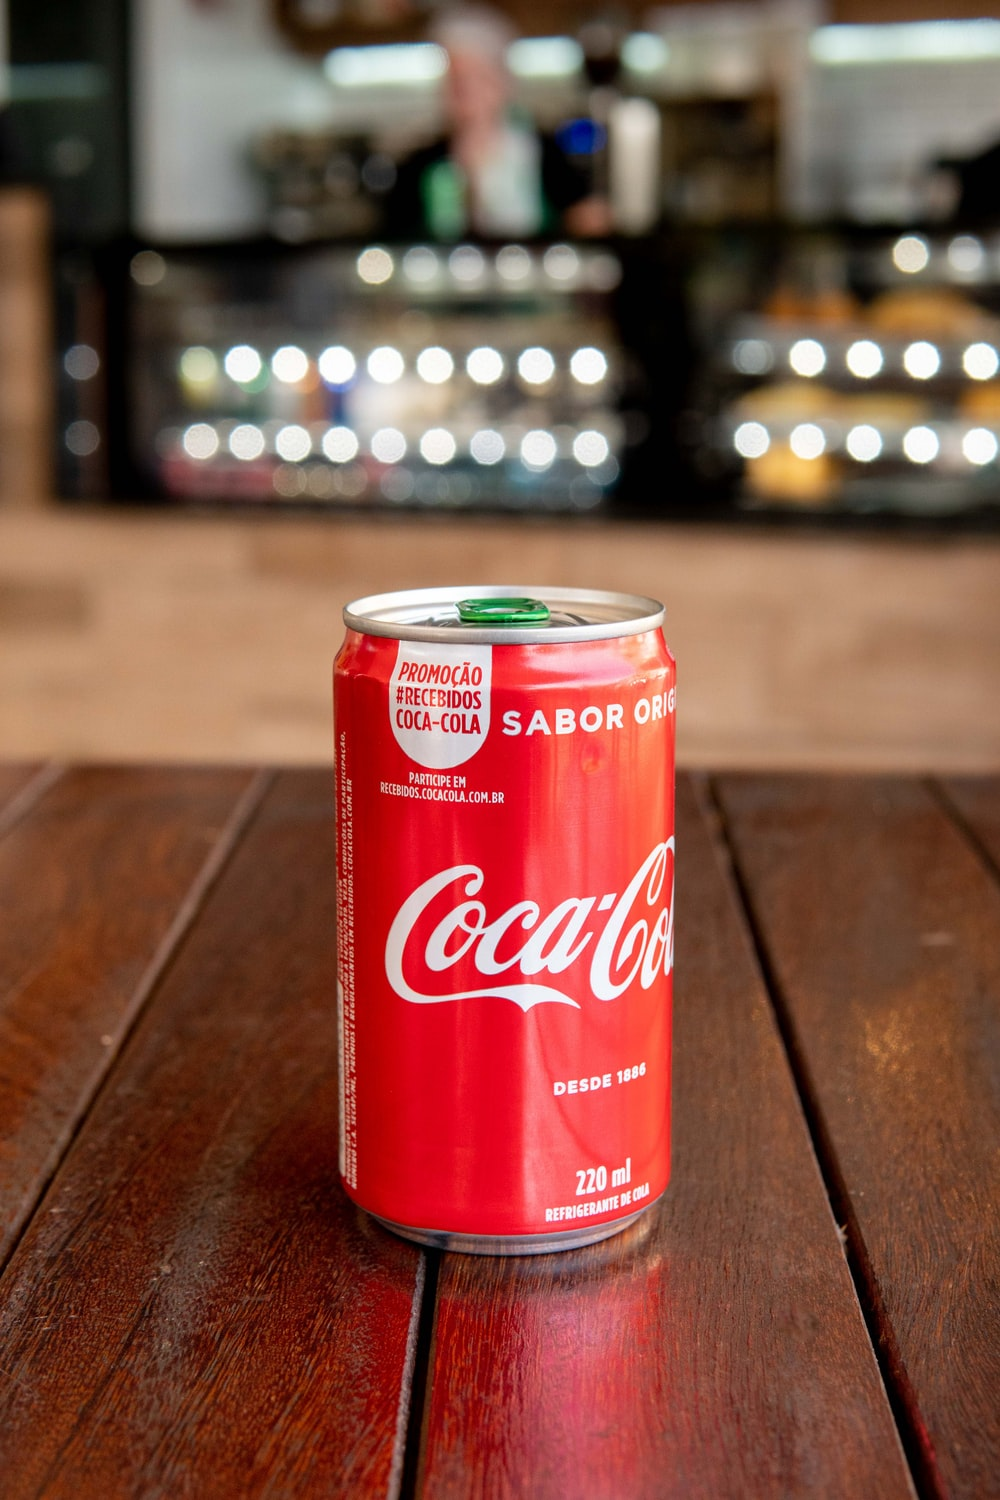 Coca-Cola soda can on brown table